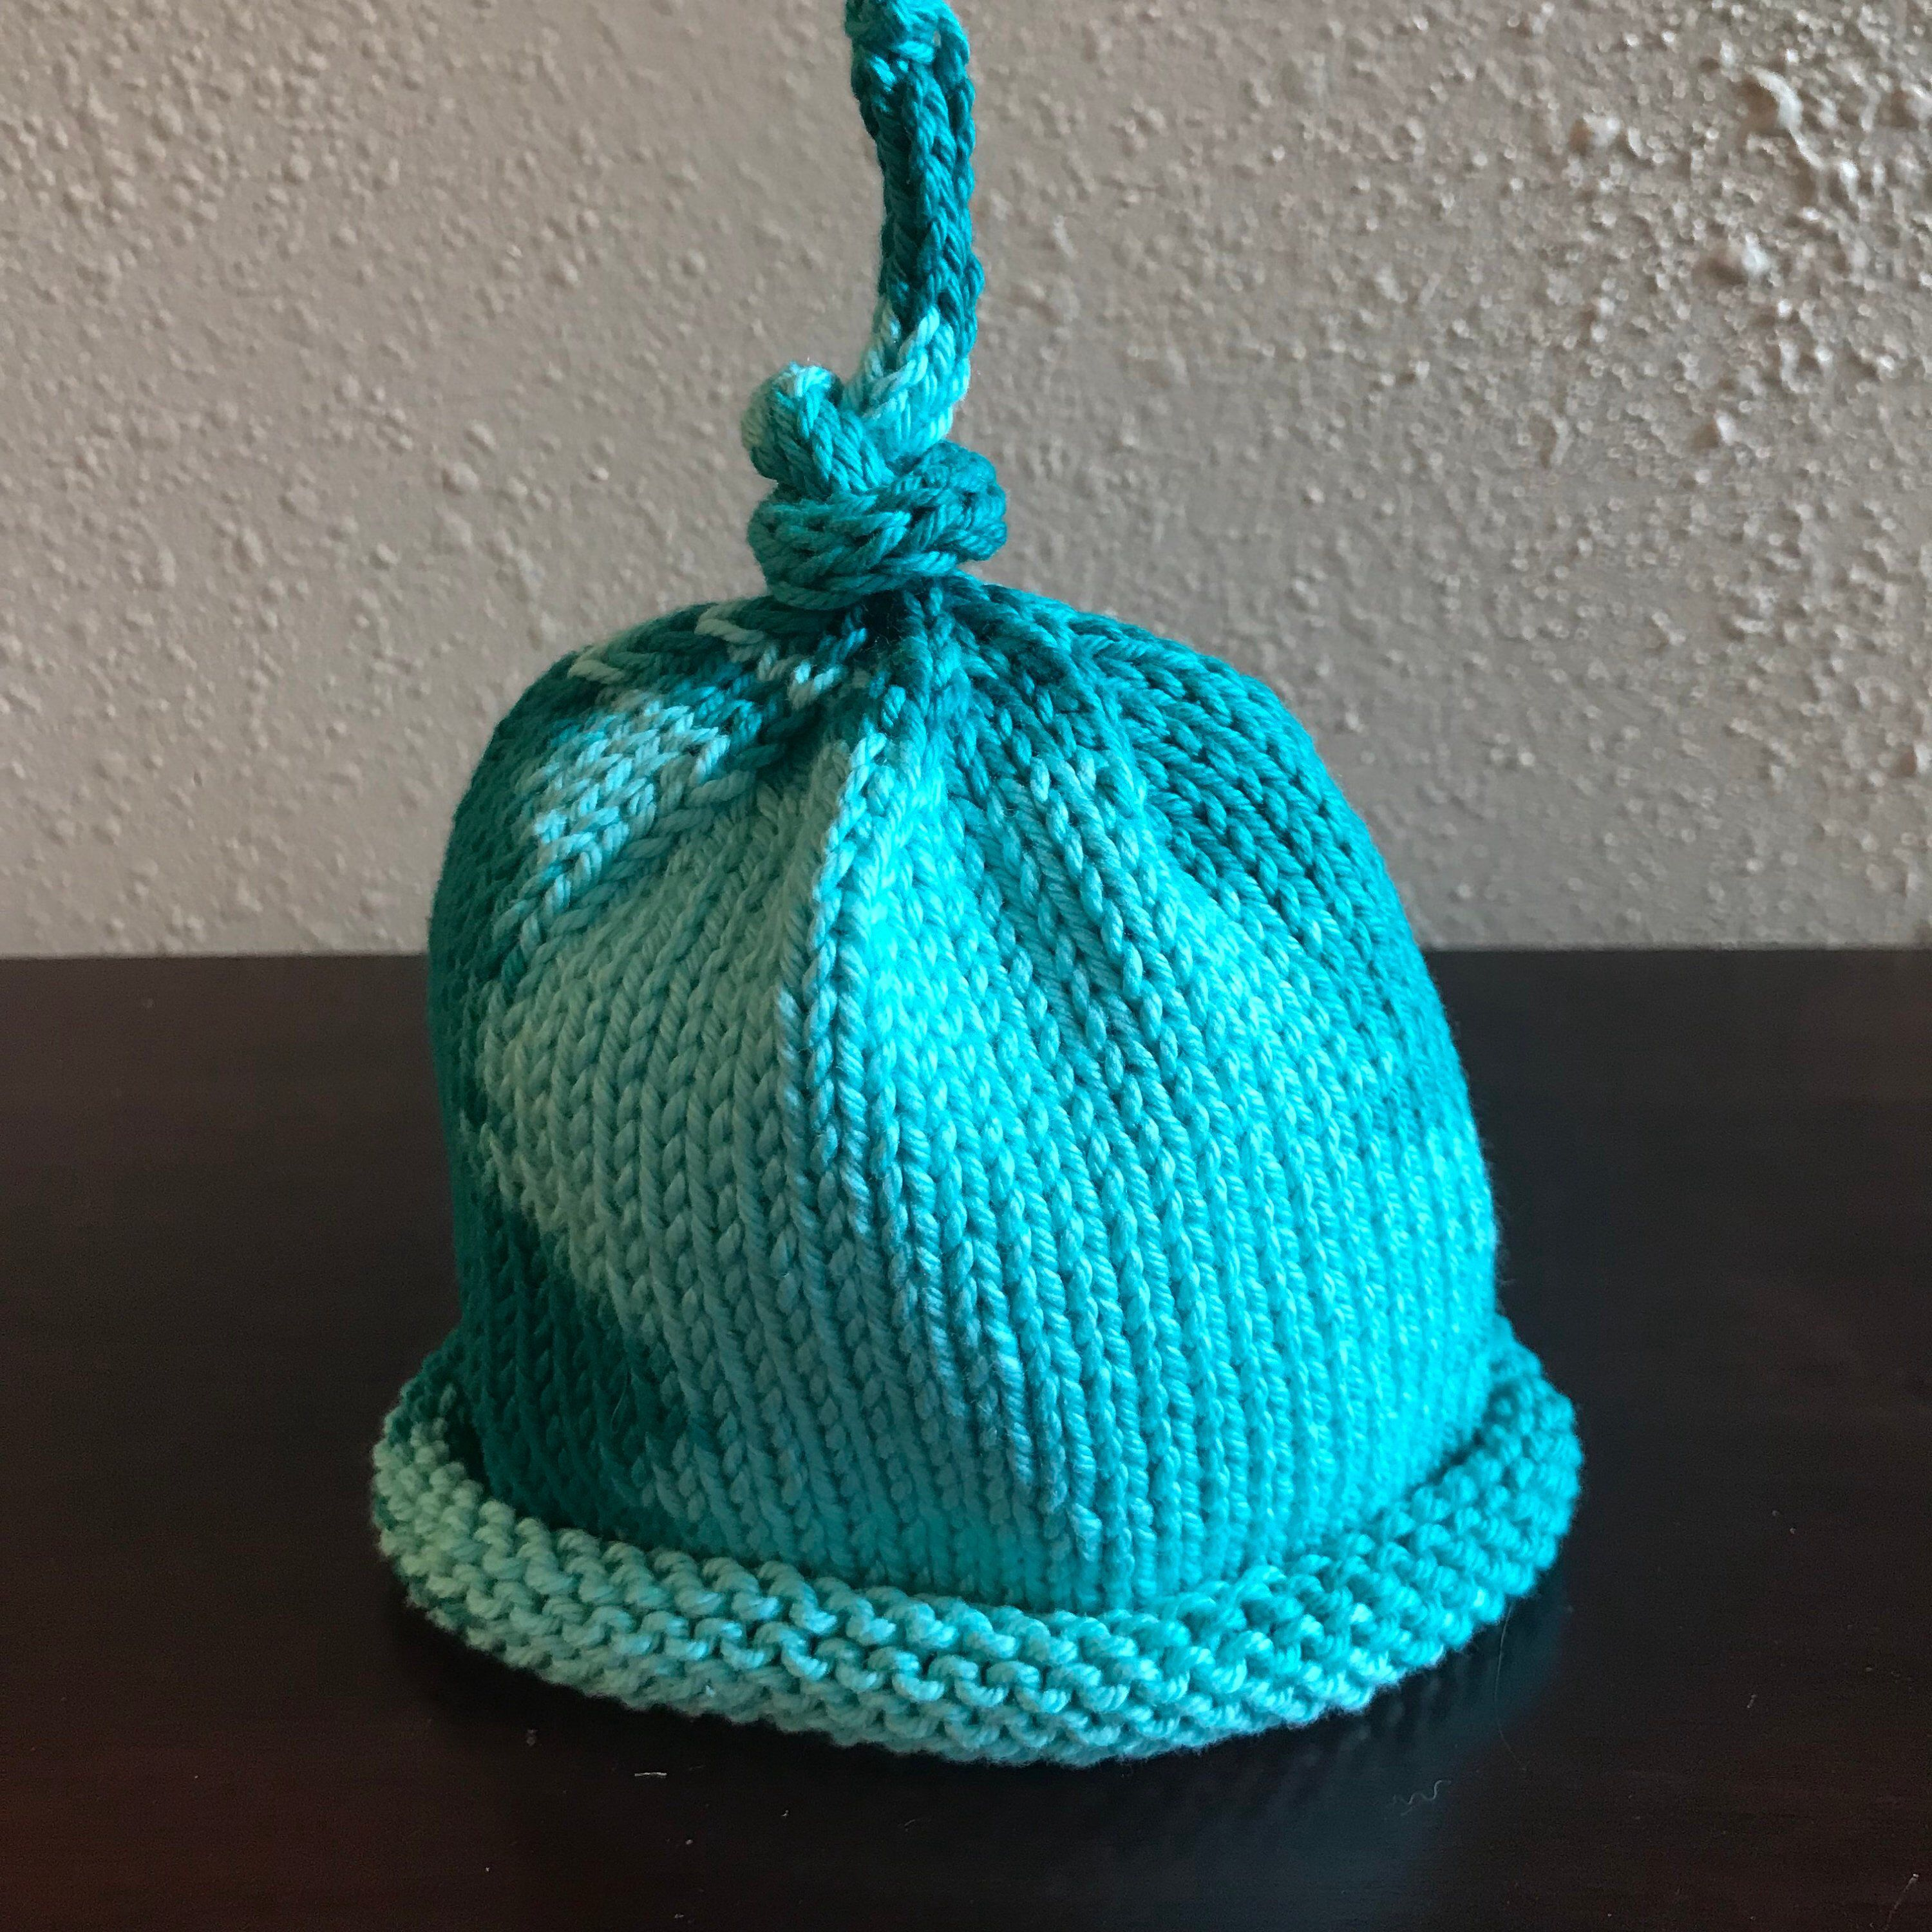 Excited to share the latest addition to my  etsy shop  Knit Baby Umbilical  Cord Hat - Baby Beanie  accessories  hat  babyshower  newbornknithat   babybeanie ... 90e8f2045860